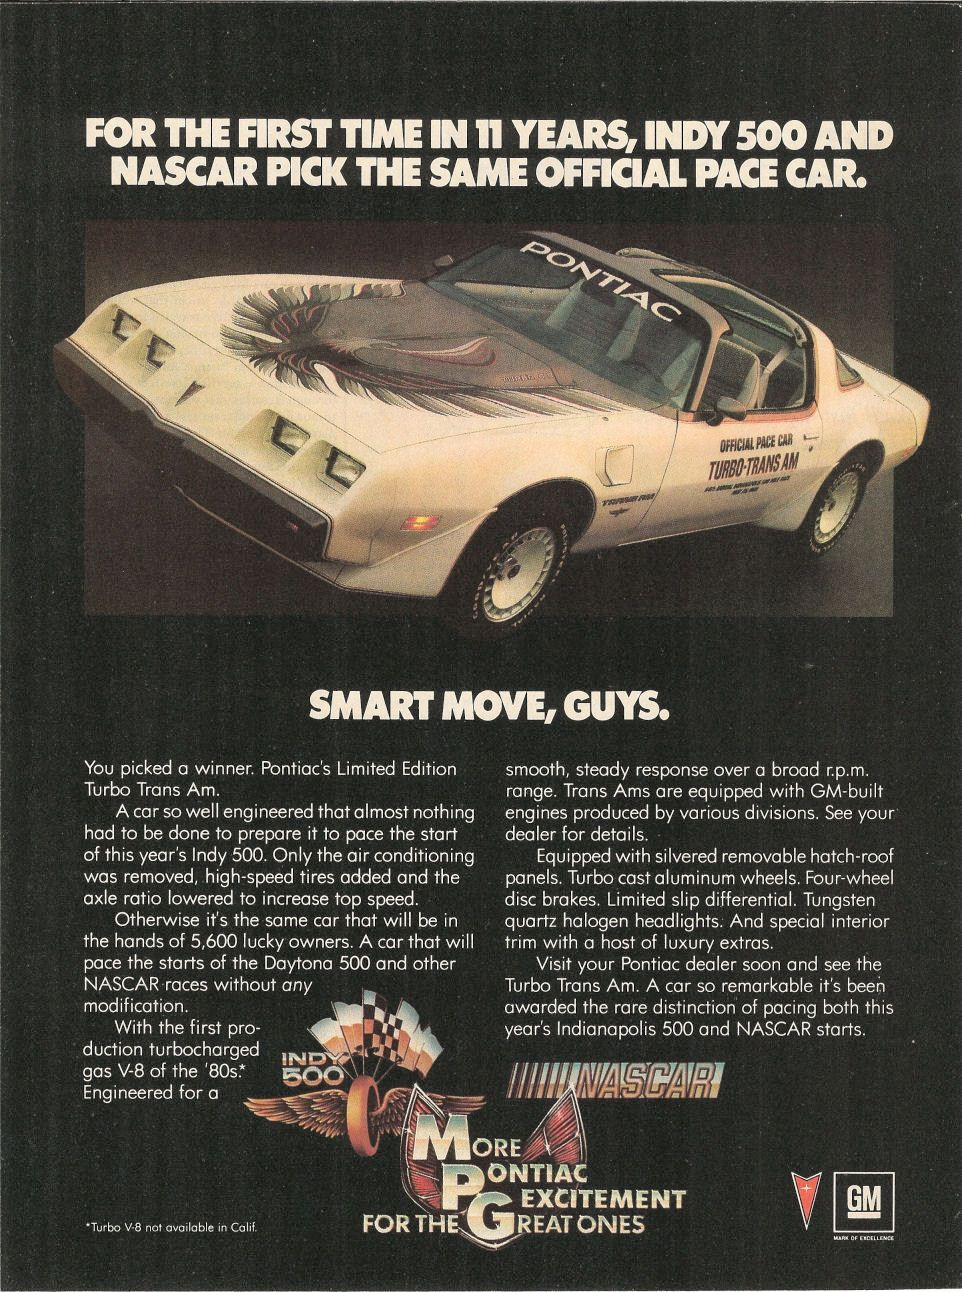 Trans Am Ads From 1980s Old Car Ads Pace Cars Pinterest